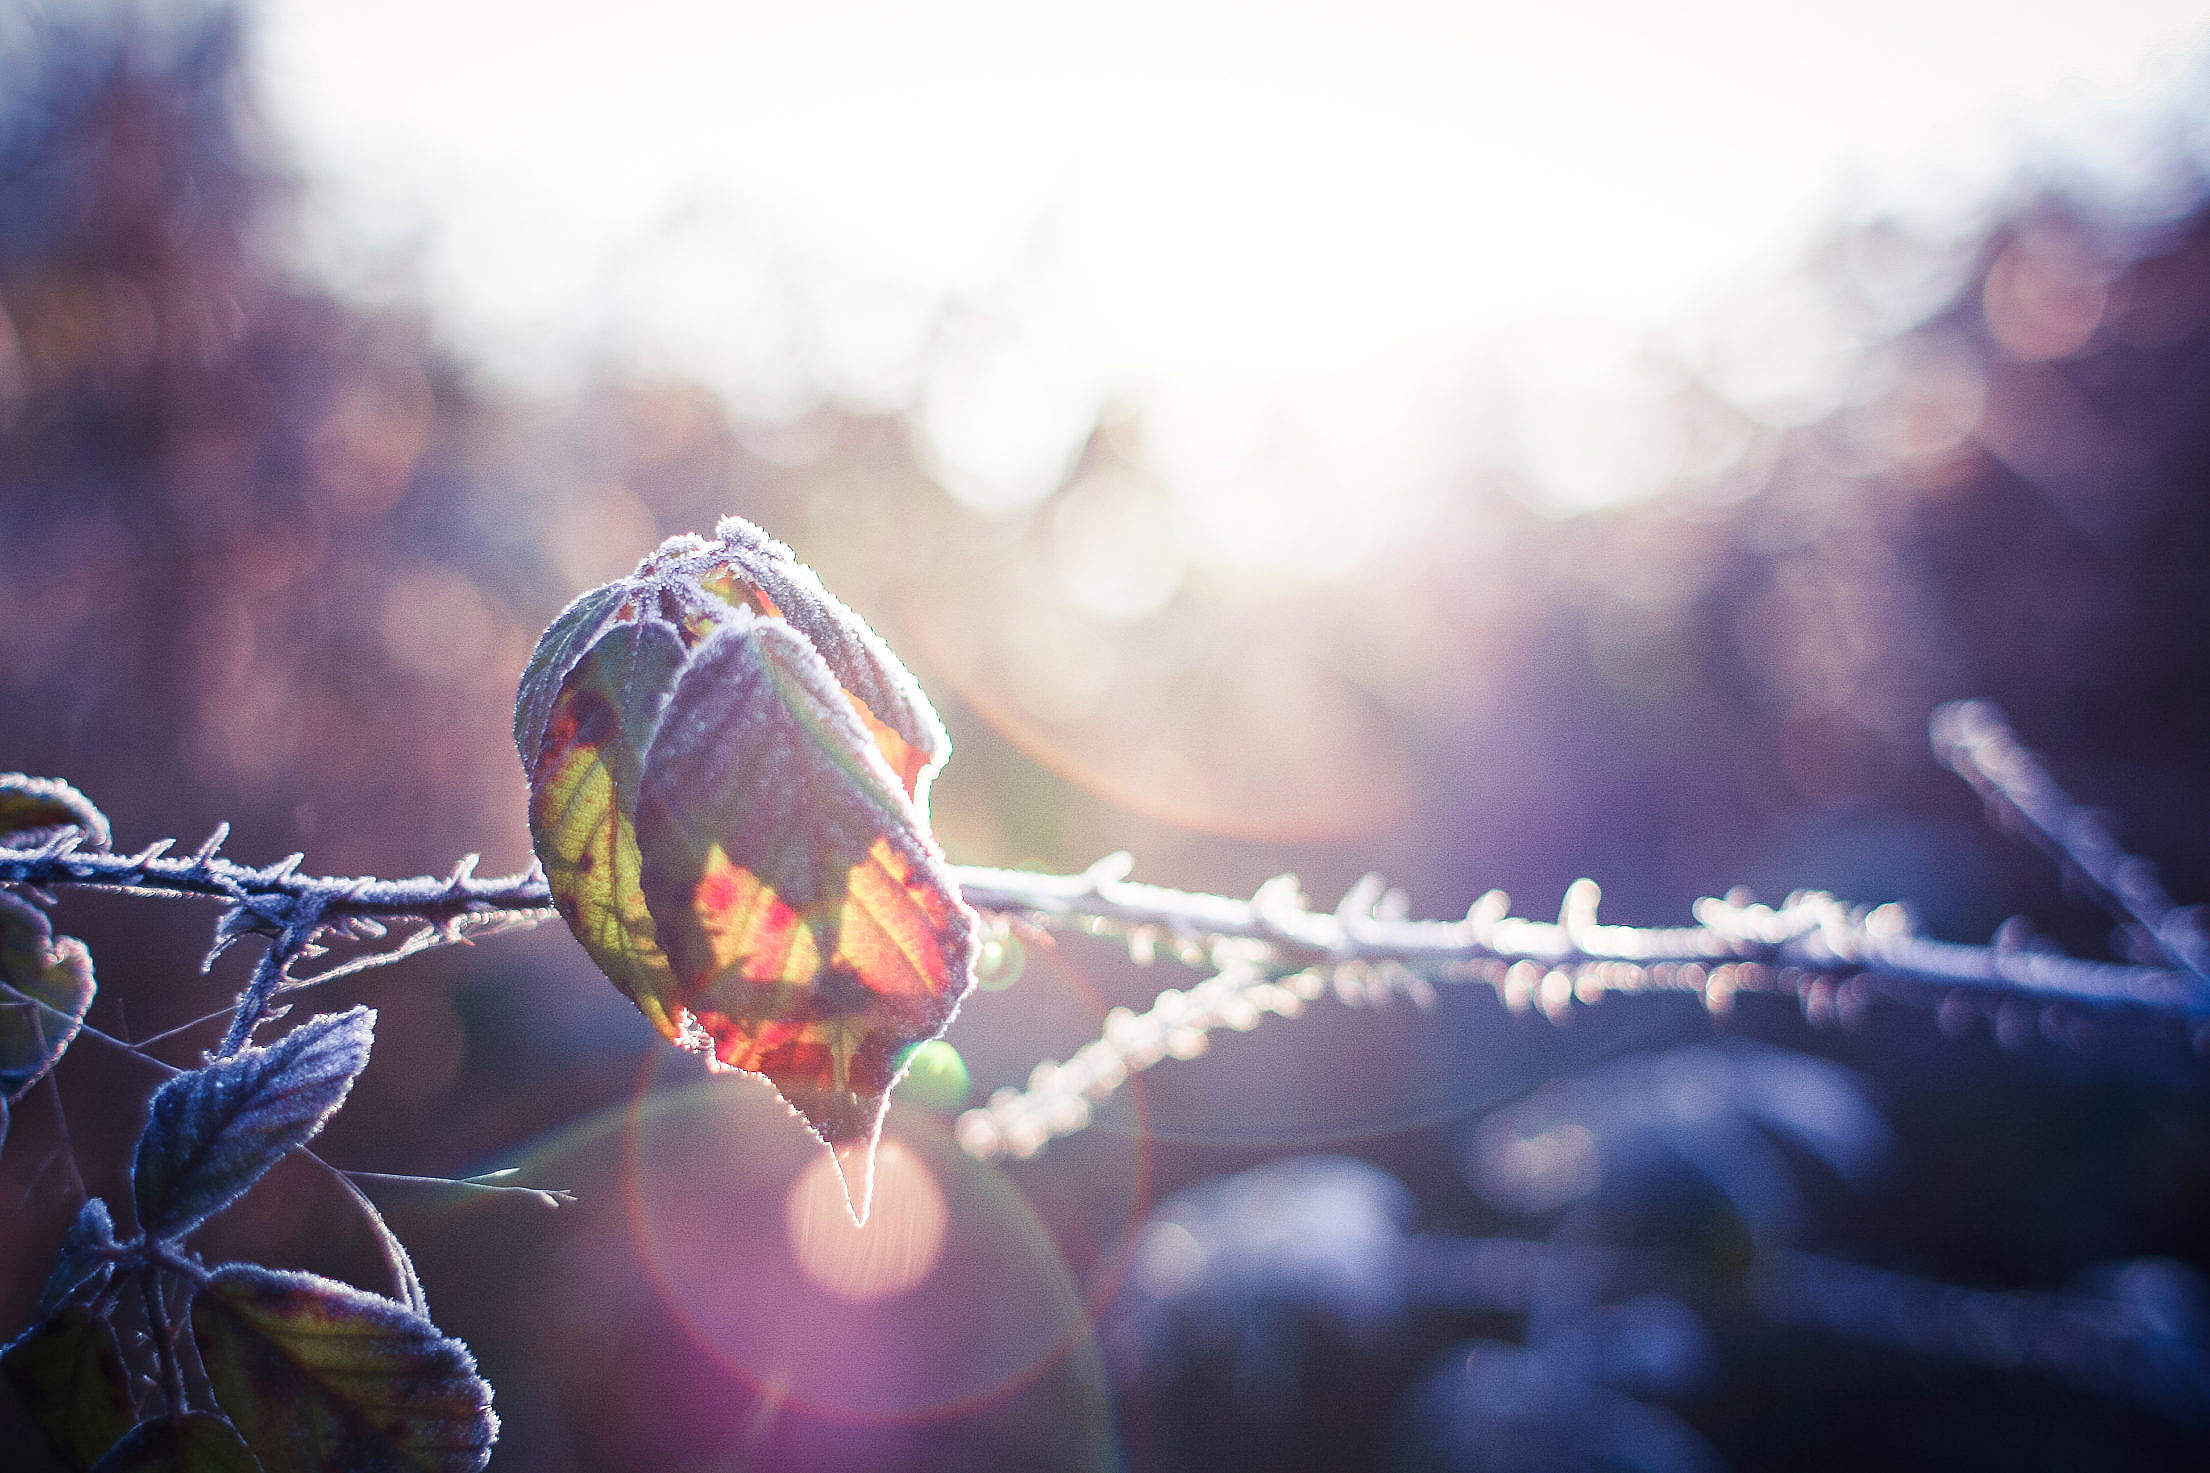 A Leaf in Morning Dew Free Stock Photo